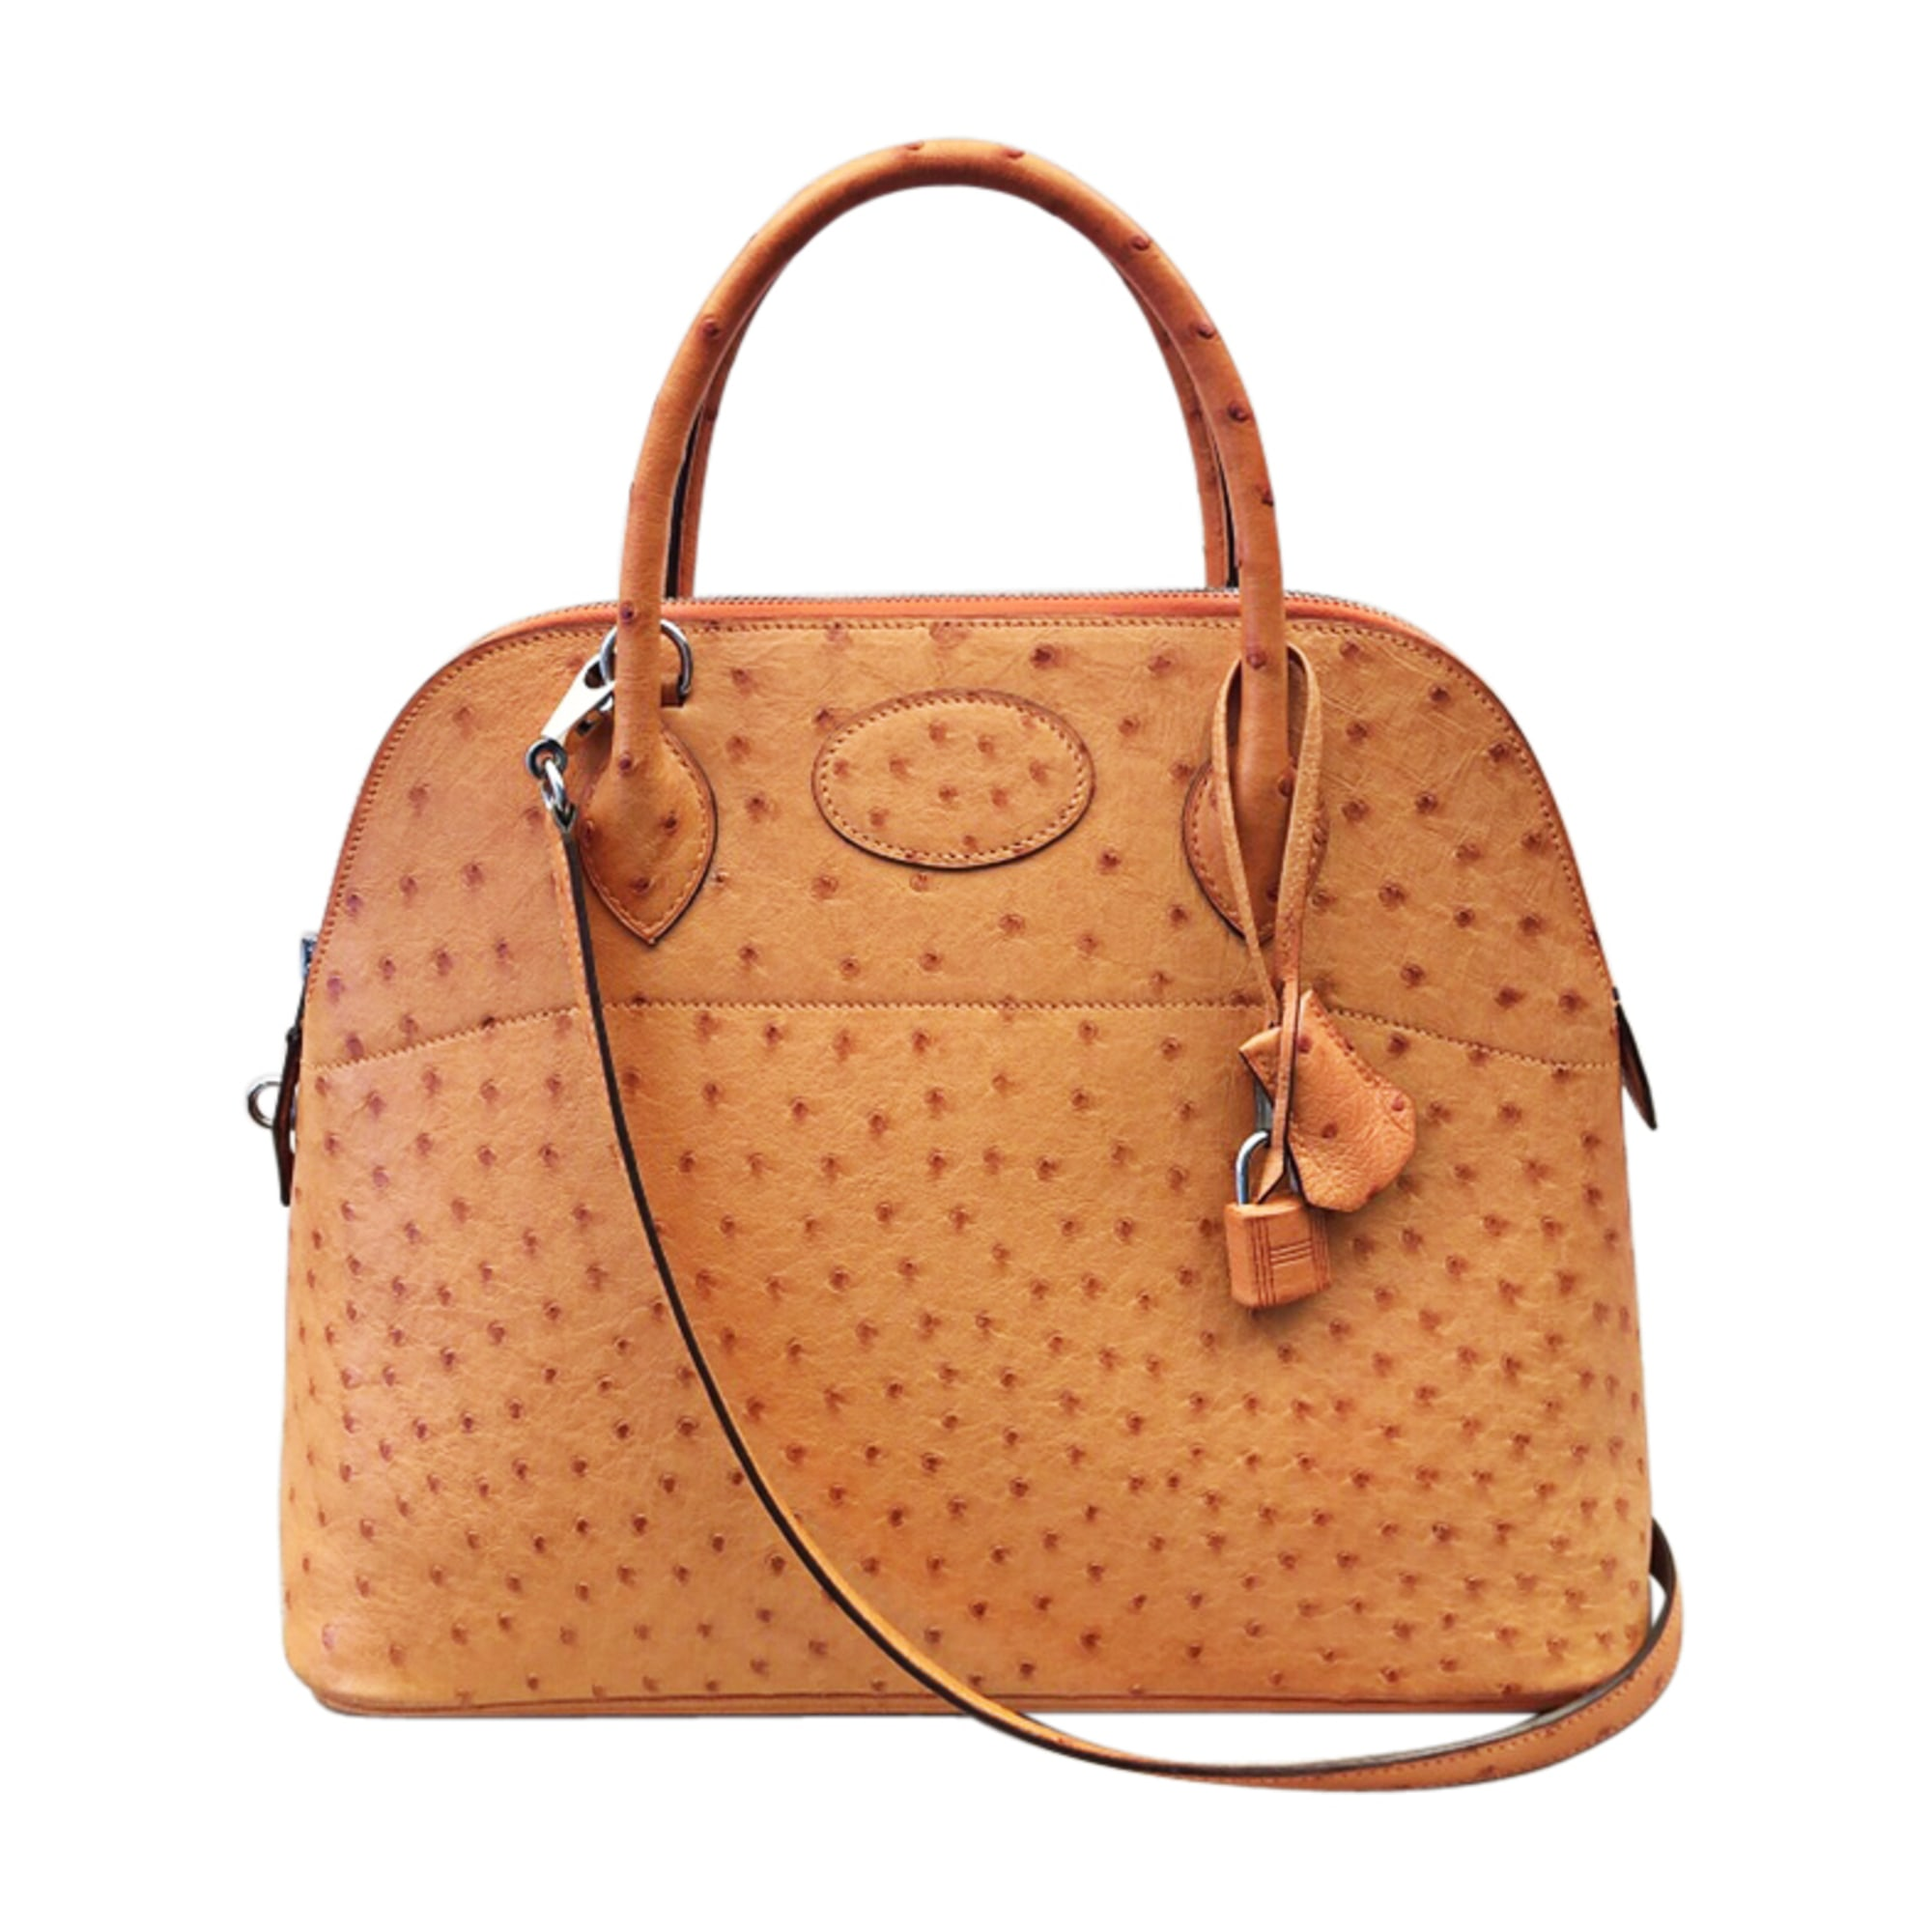 acbd91d3a5 Sac à main en cuir HERMÈS orange - 8615140